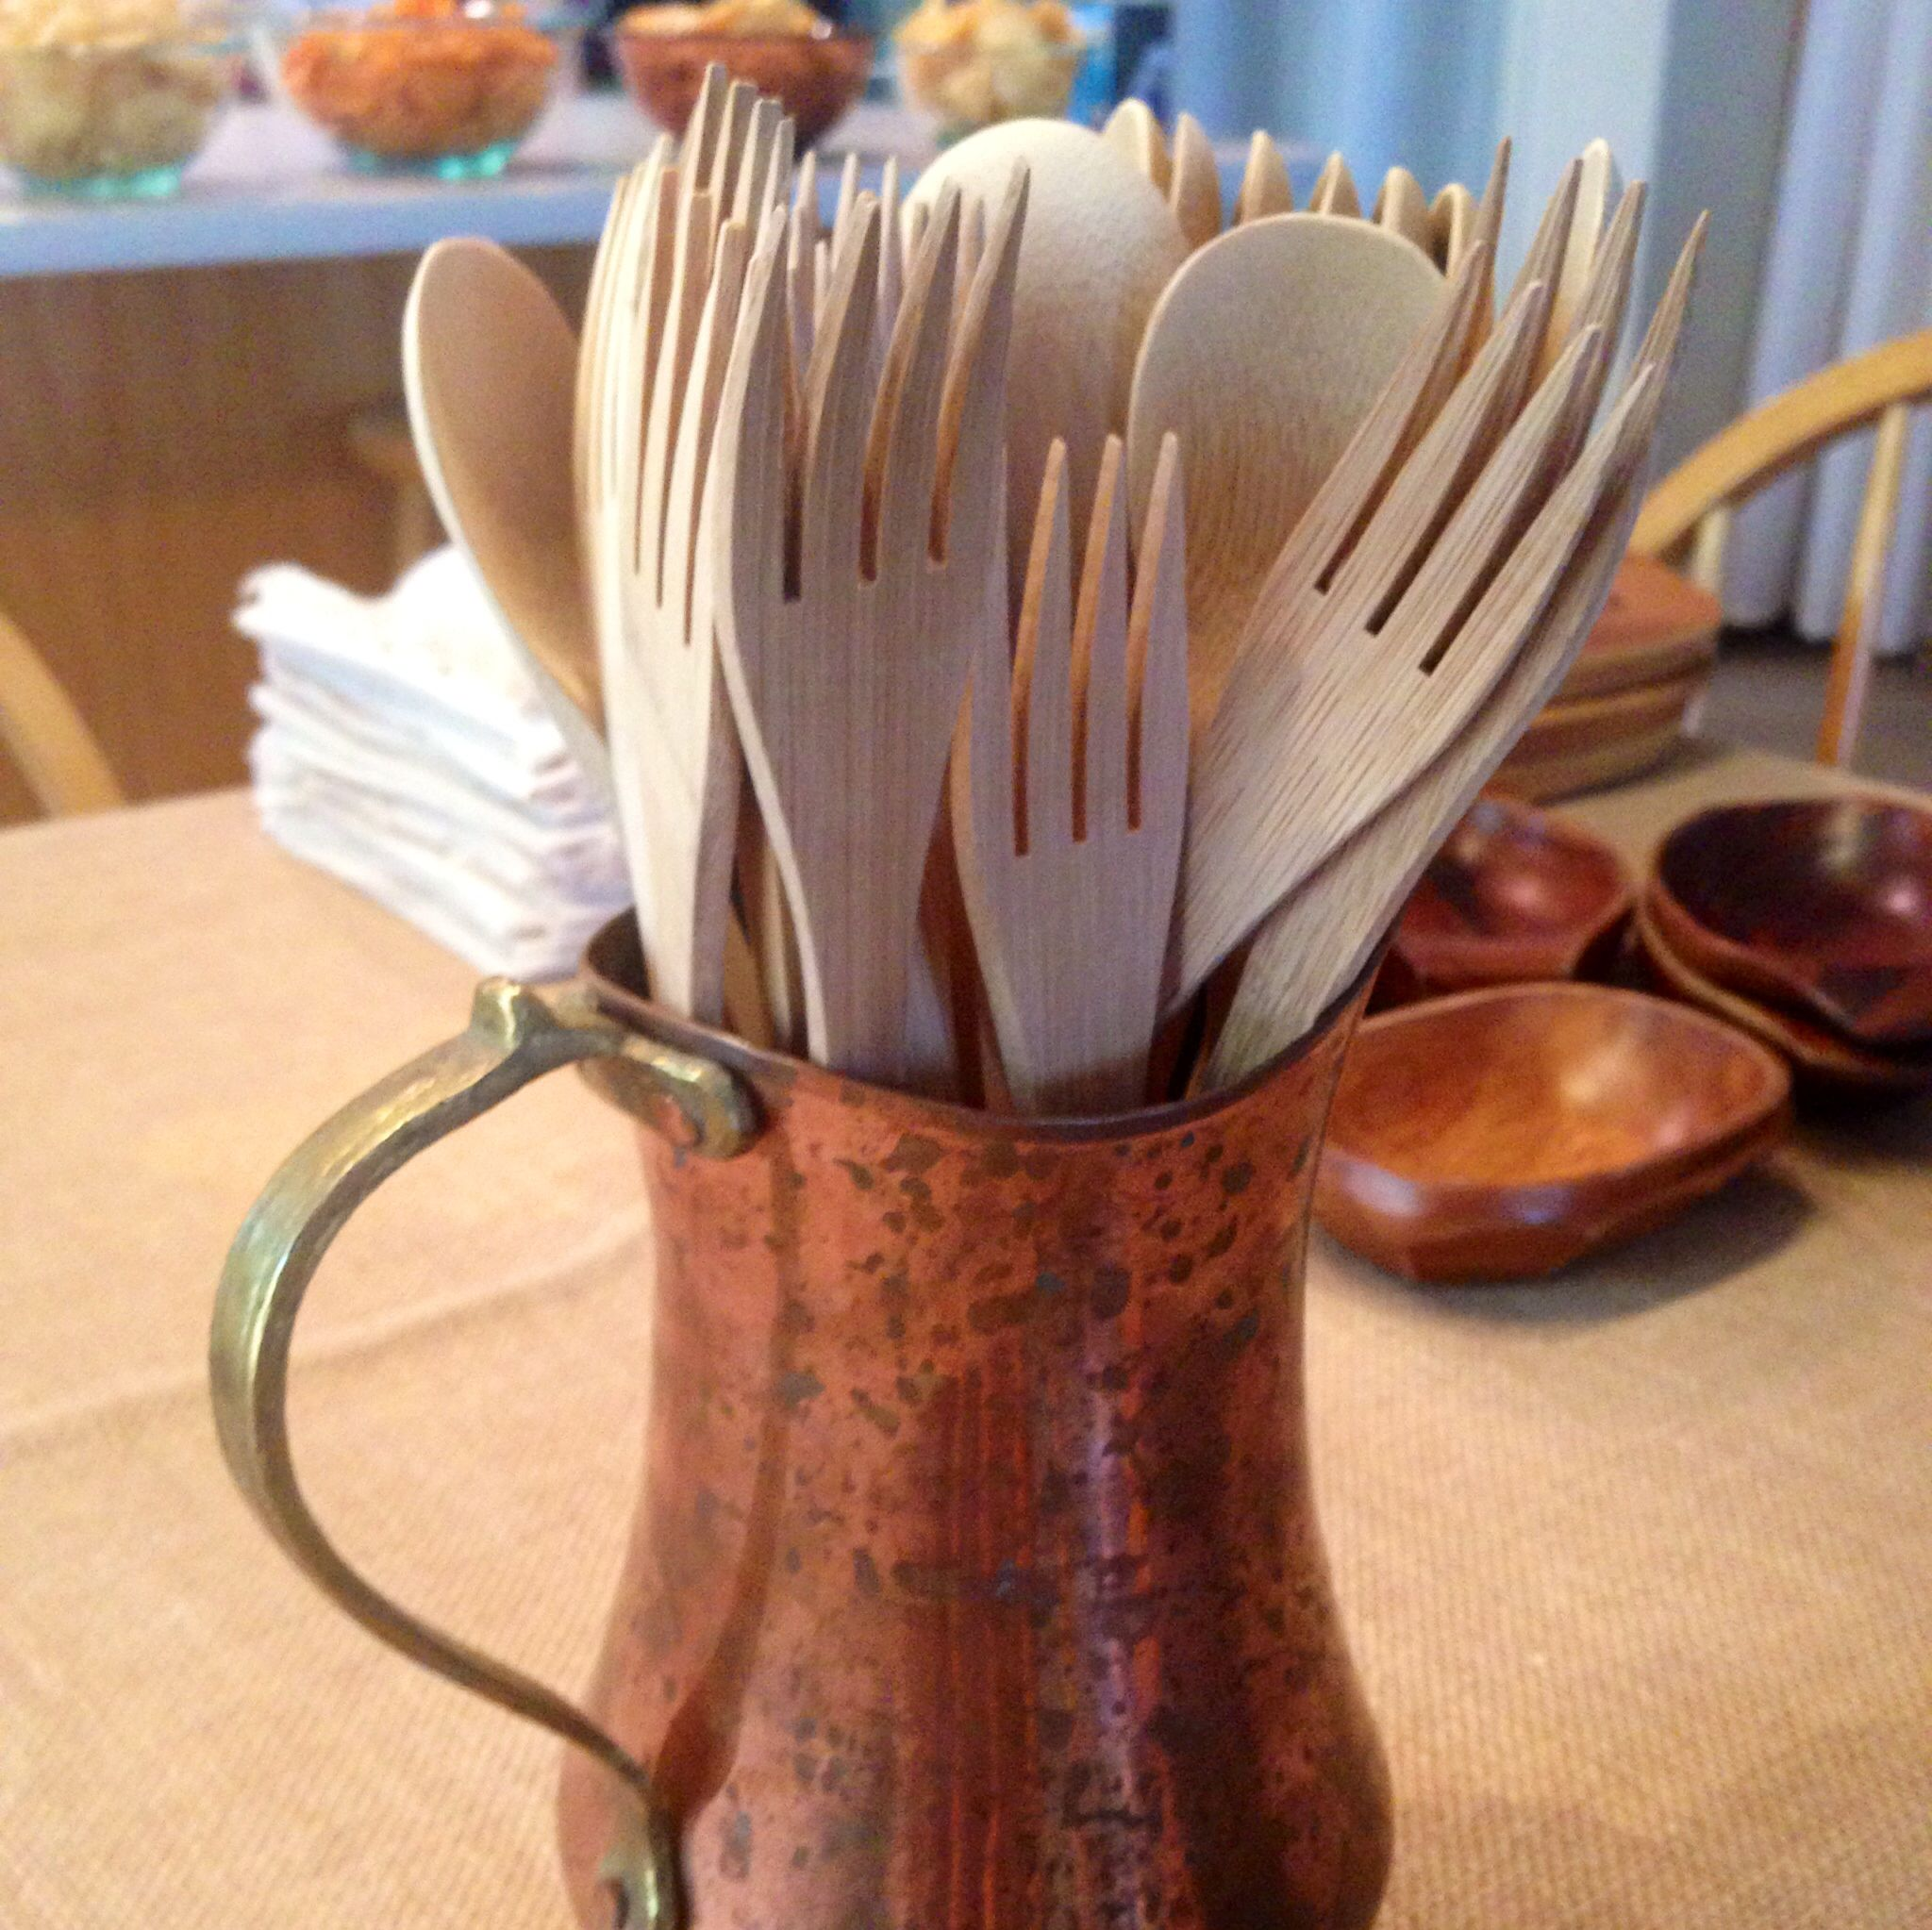 Wooden cutlery from Party City.